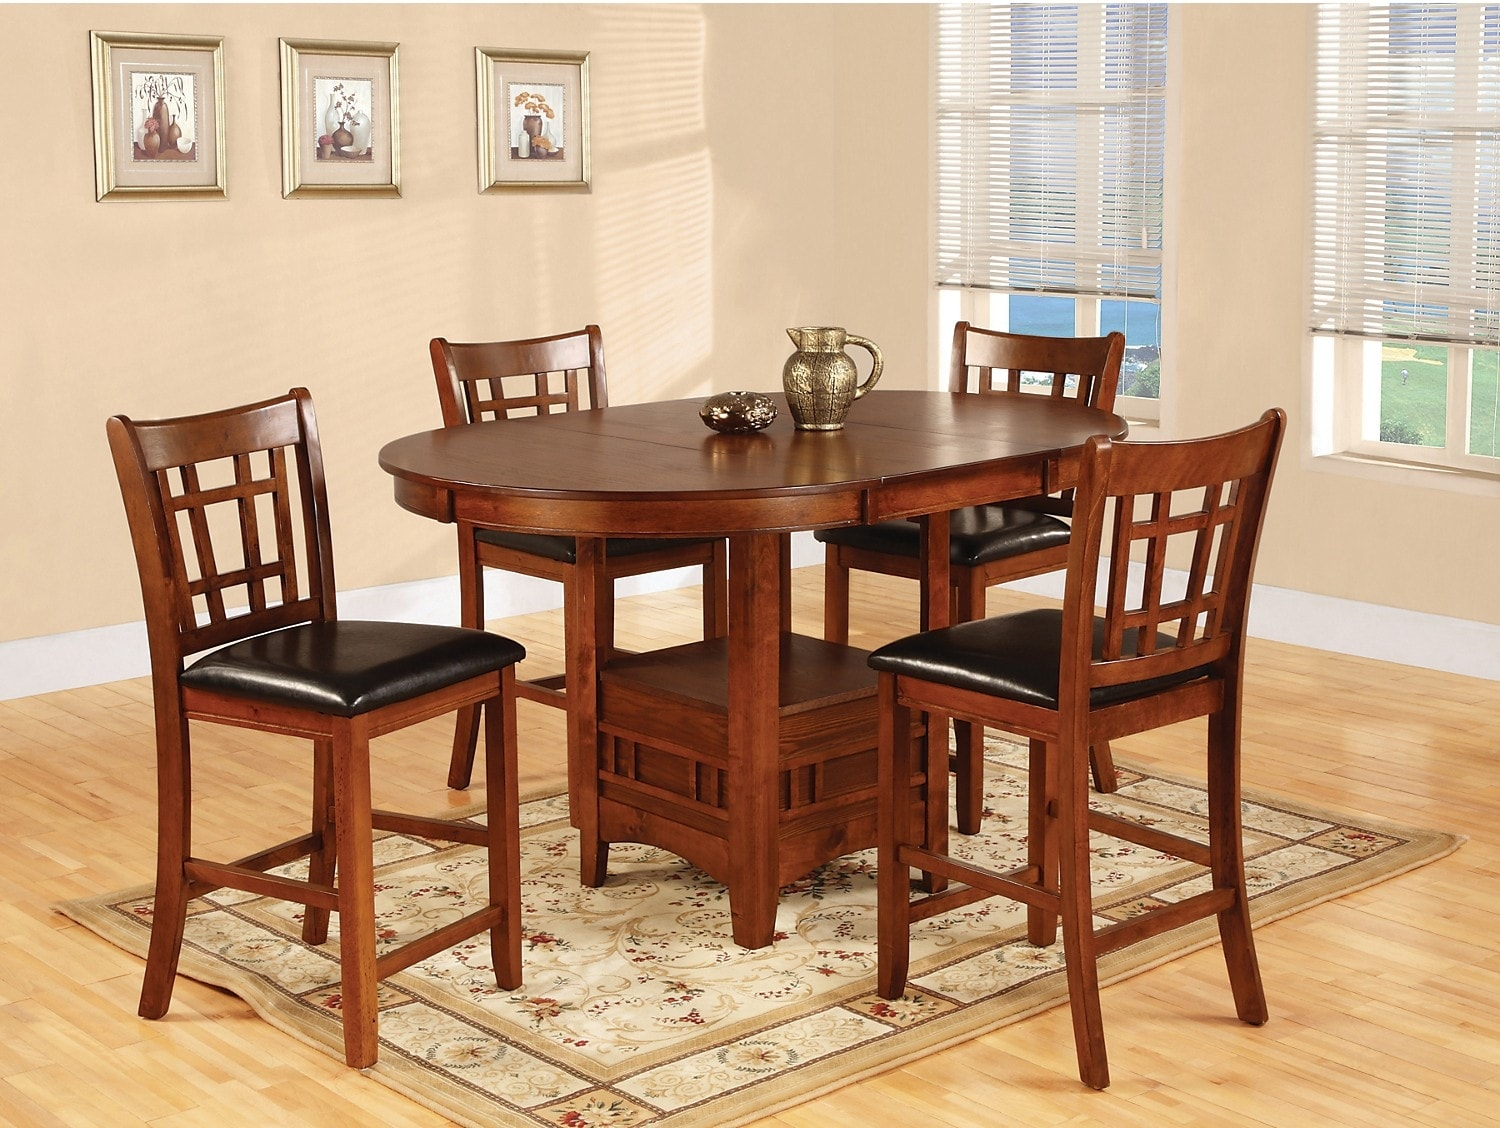 Dalton 7-Piece Counter-Height Dining Package – Oak